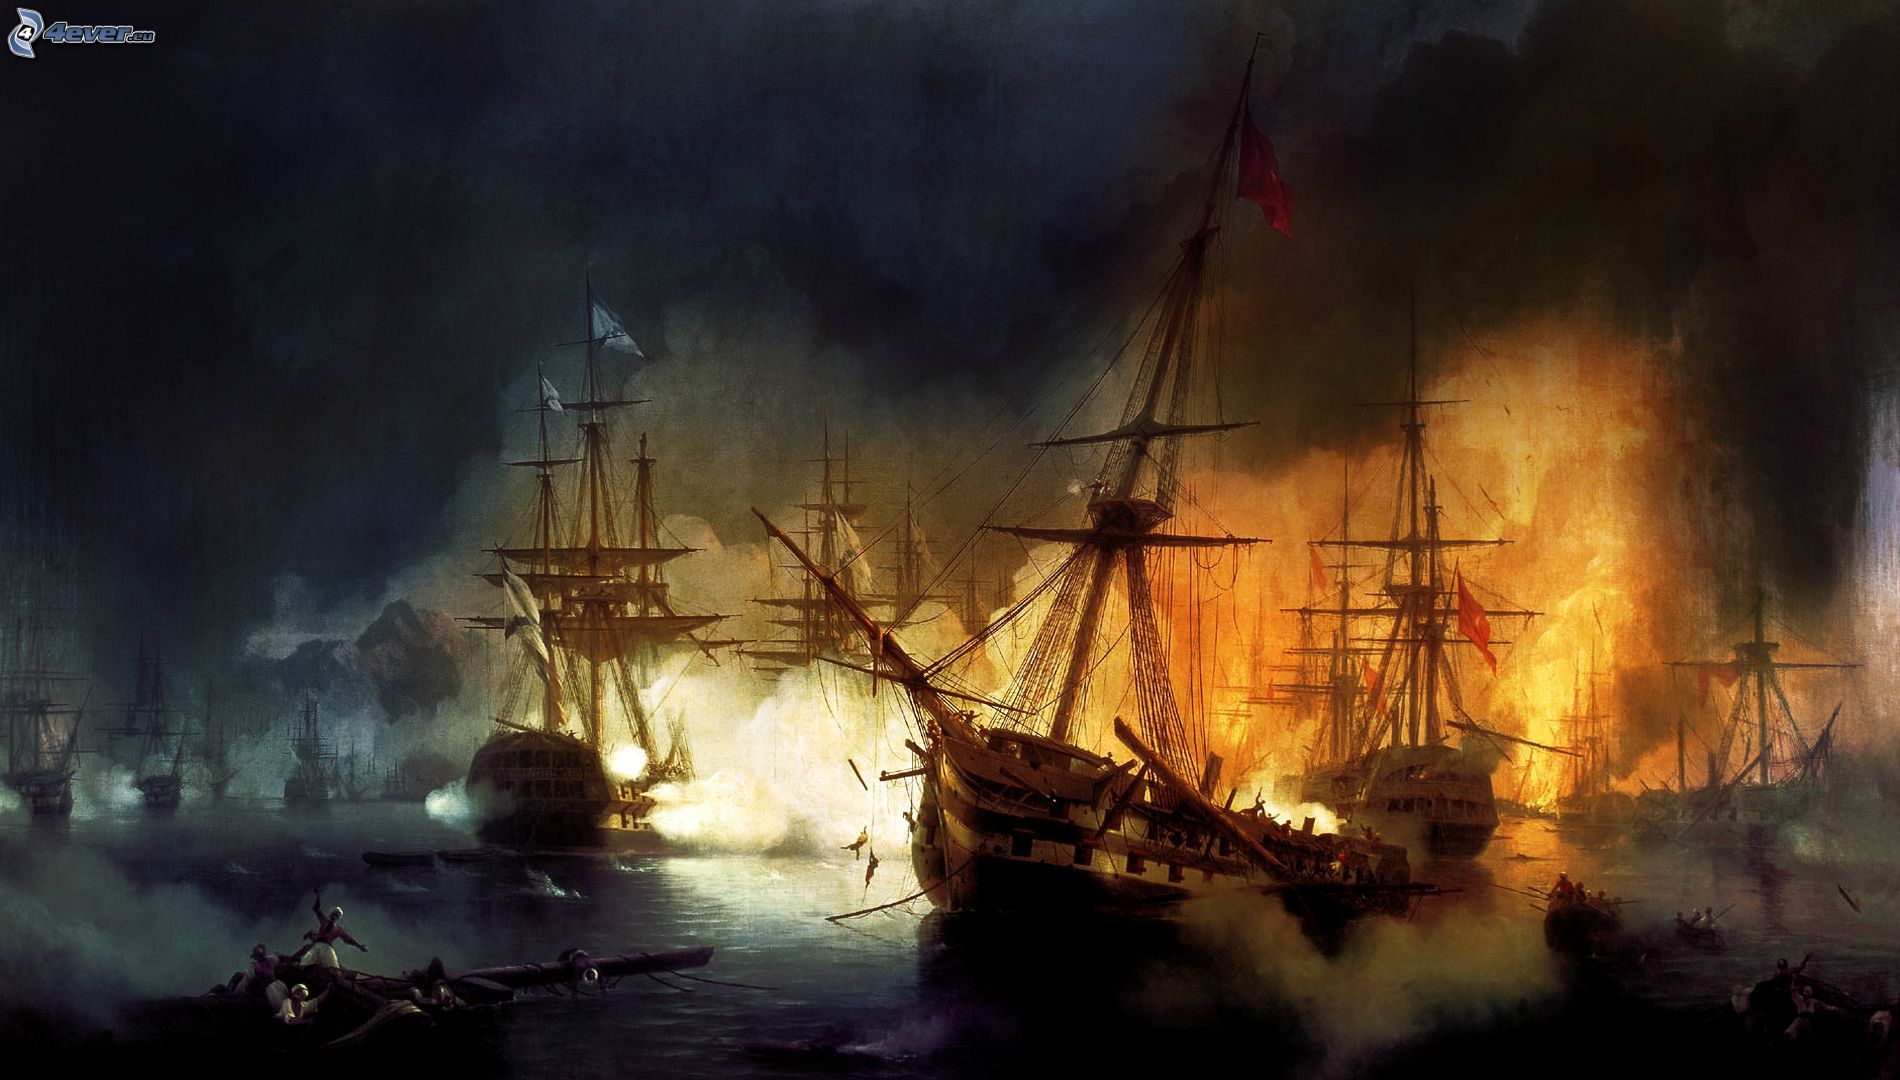 burning_ships__sailboats__battle__night_171784__1_.jpg